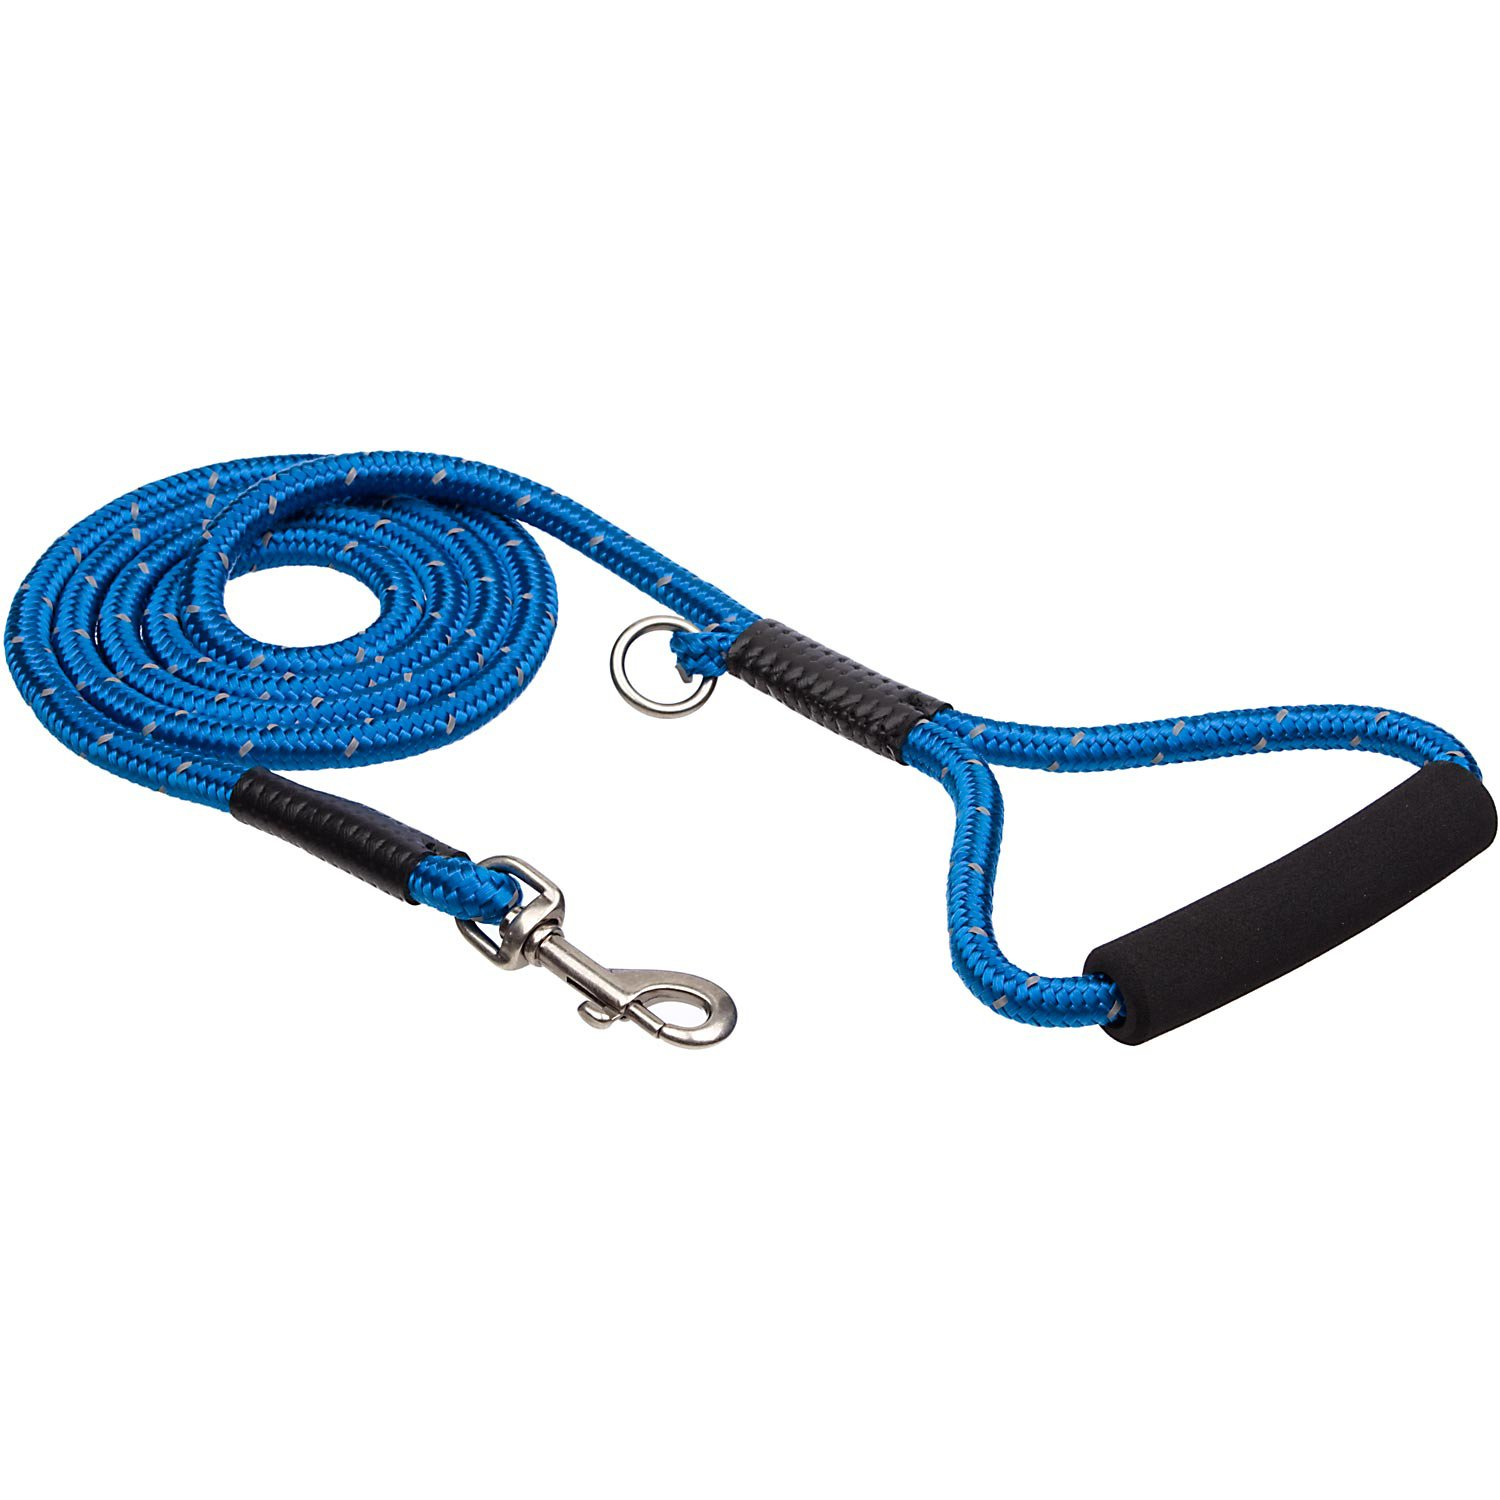 Petco Nylon Reflective Blue Dog Lead